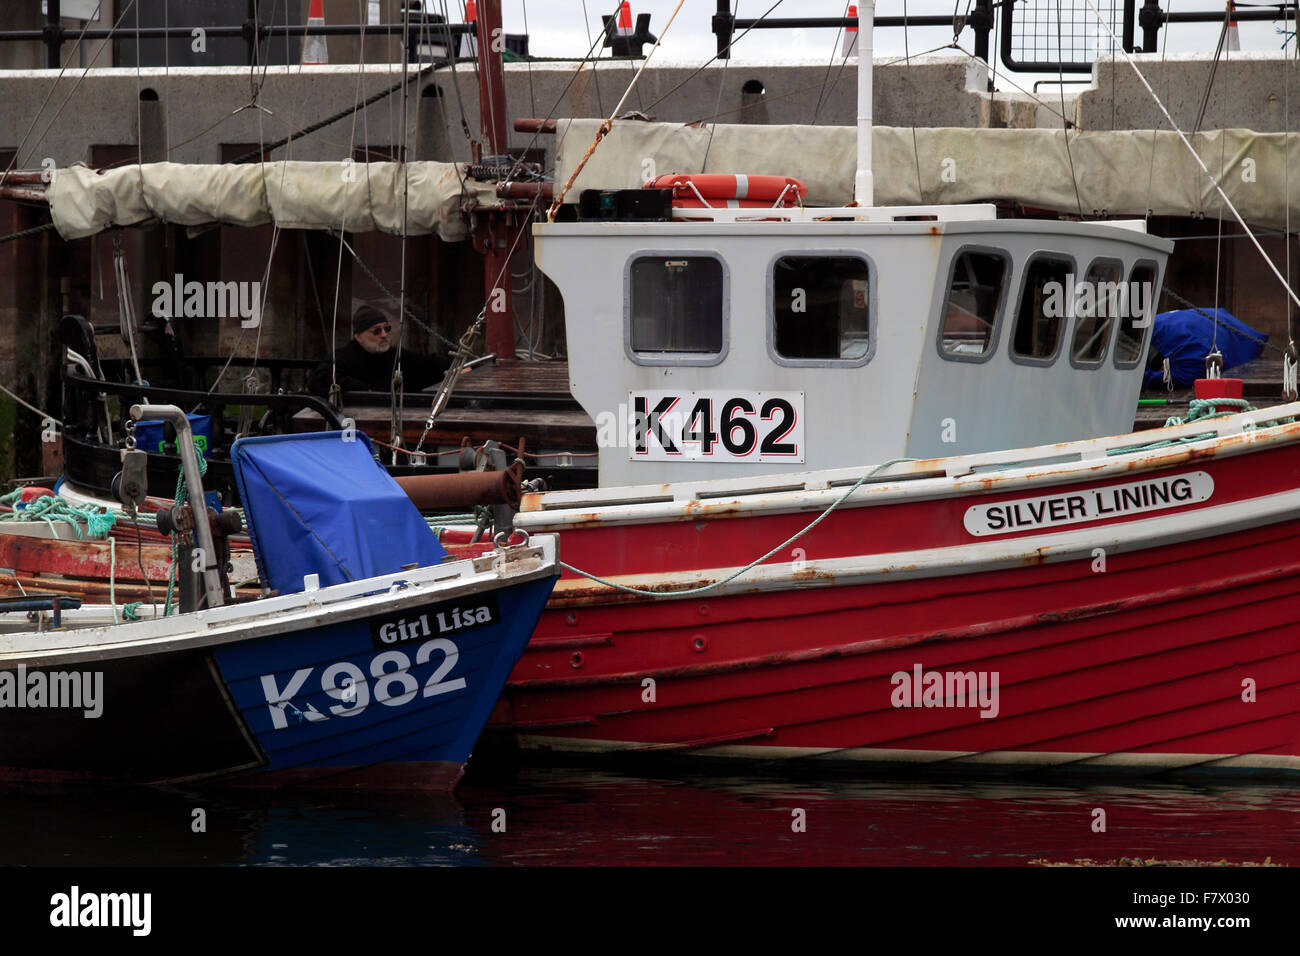 Boats The Basin Kirkwall Harbour Orkney Islands Scotland UK - Stock Image